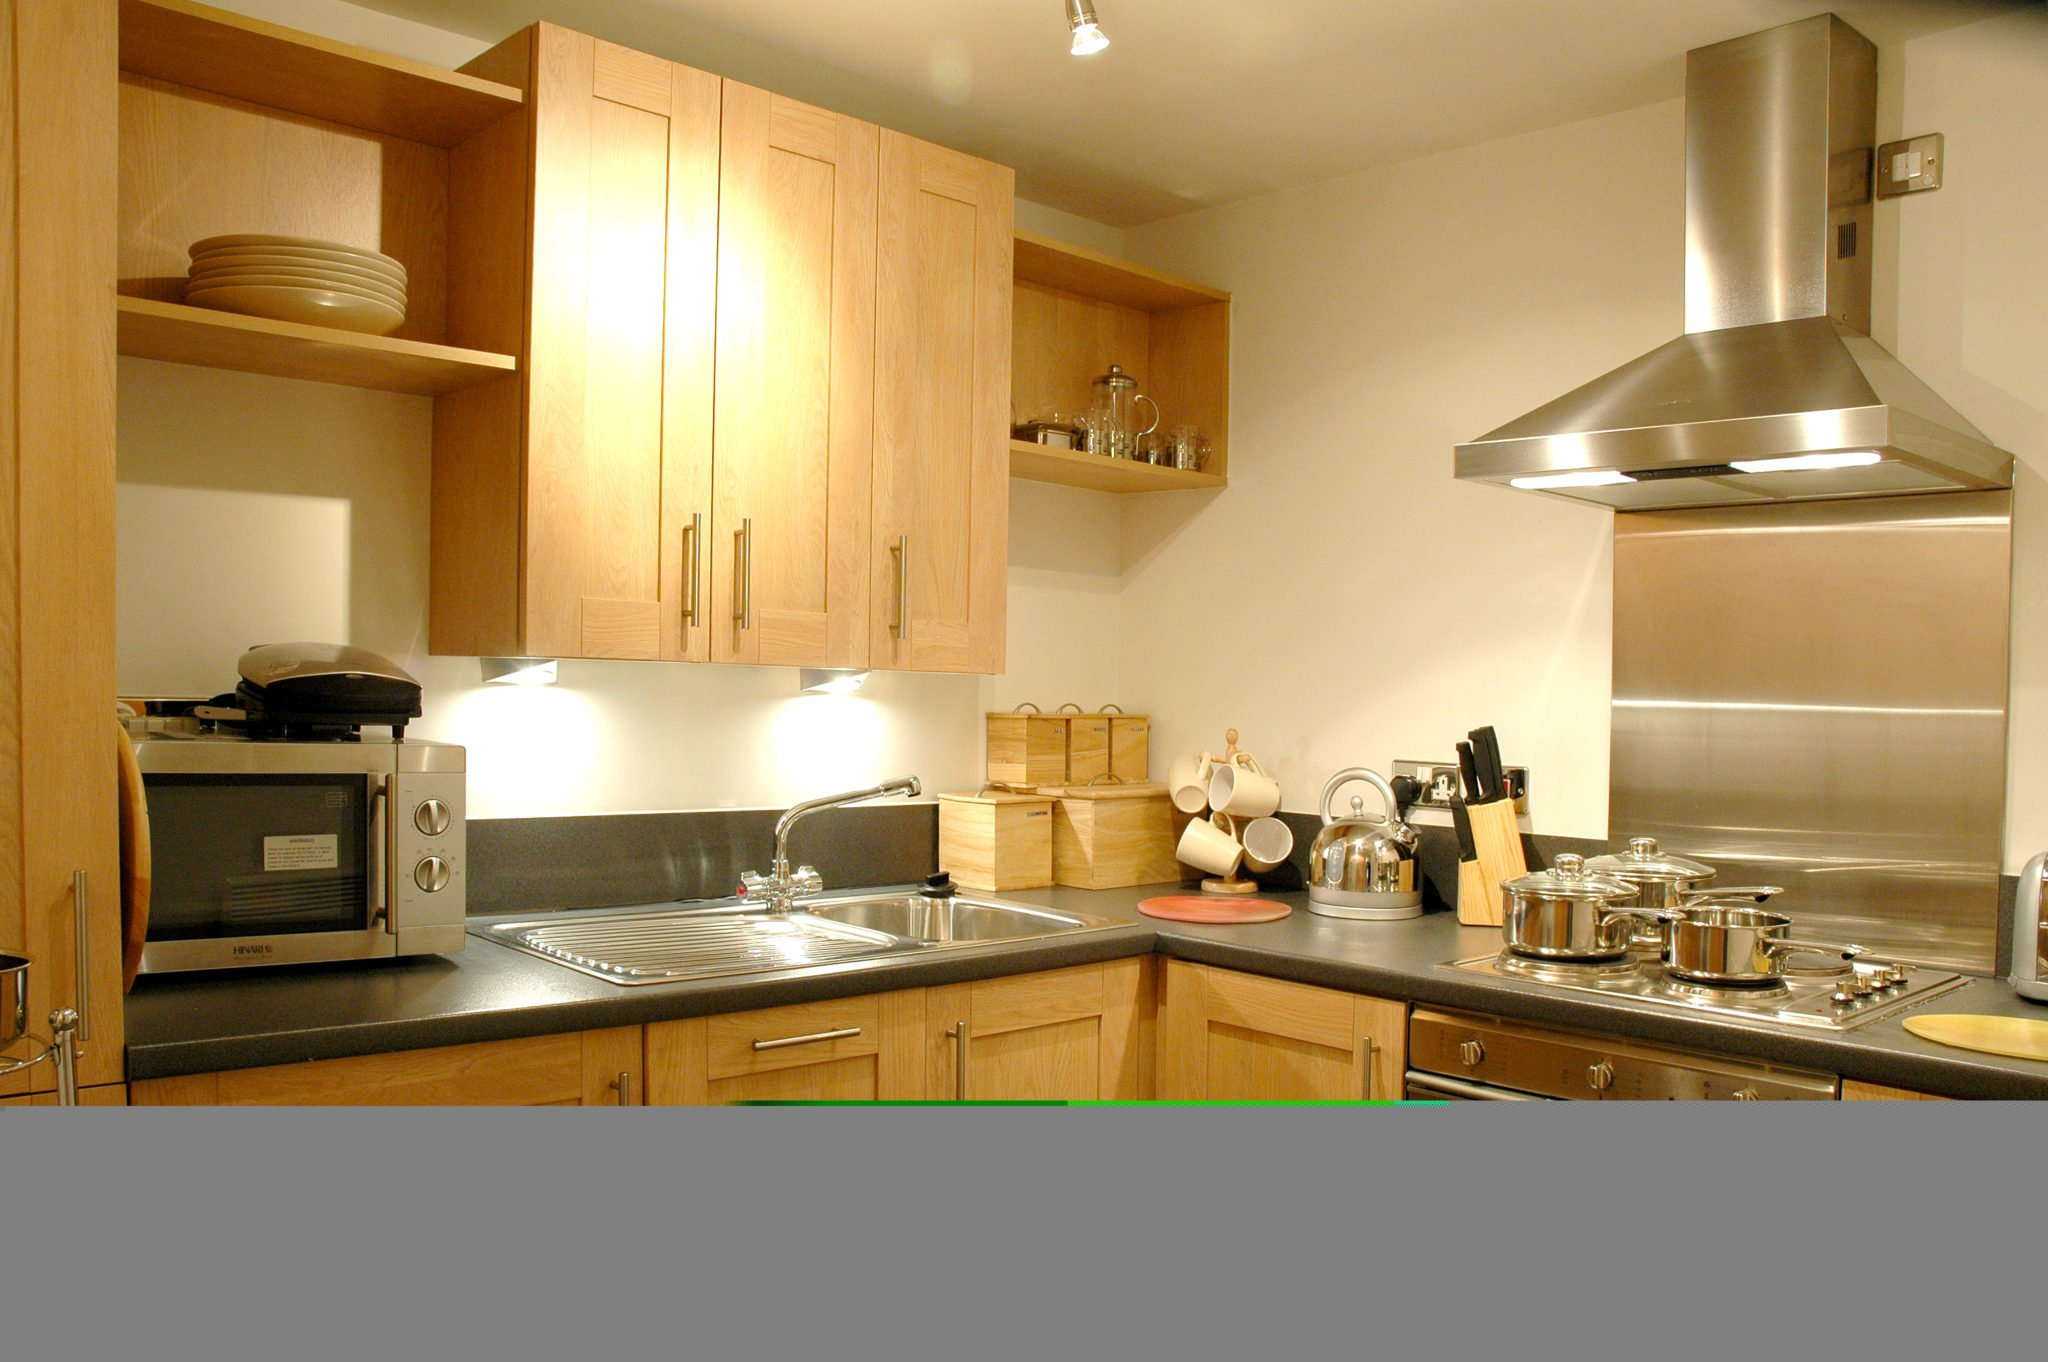 Newcastle-Short-Let-Accommodation-UK-available-Now!-Book-Corporate-Serviced-Apartments-in-North-East-England-today!-Parking,Wifi,-5*-Service,-All-bills-incl-|-Urban-Stay